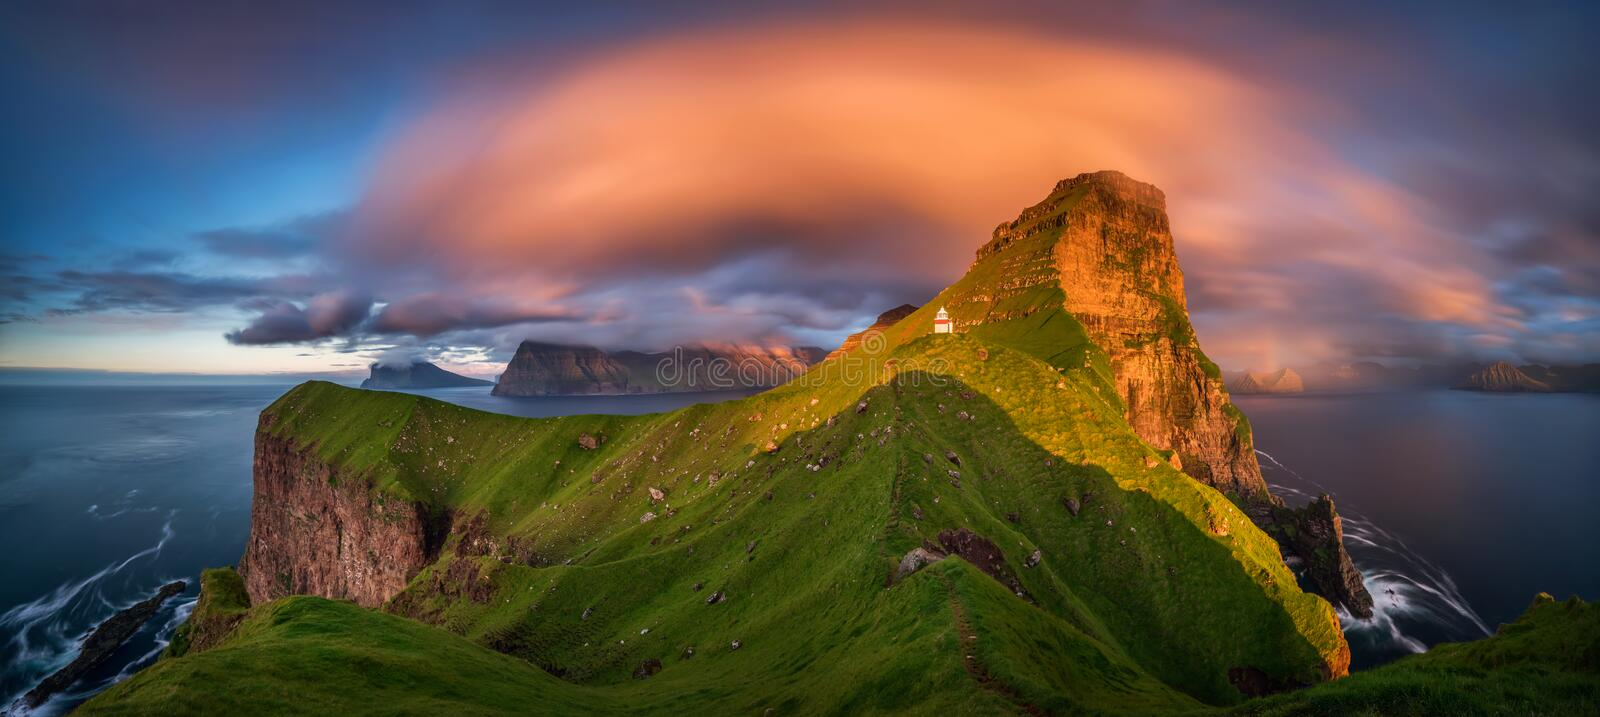 Kallur Lighthouse Panorama royalty free stock image